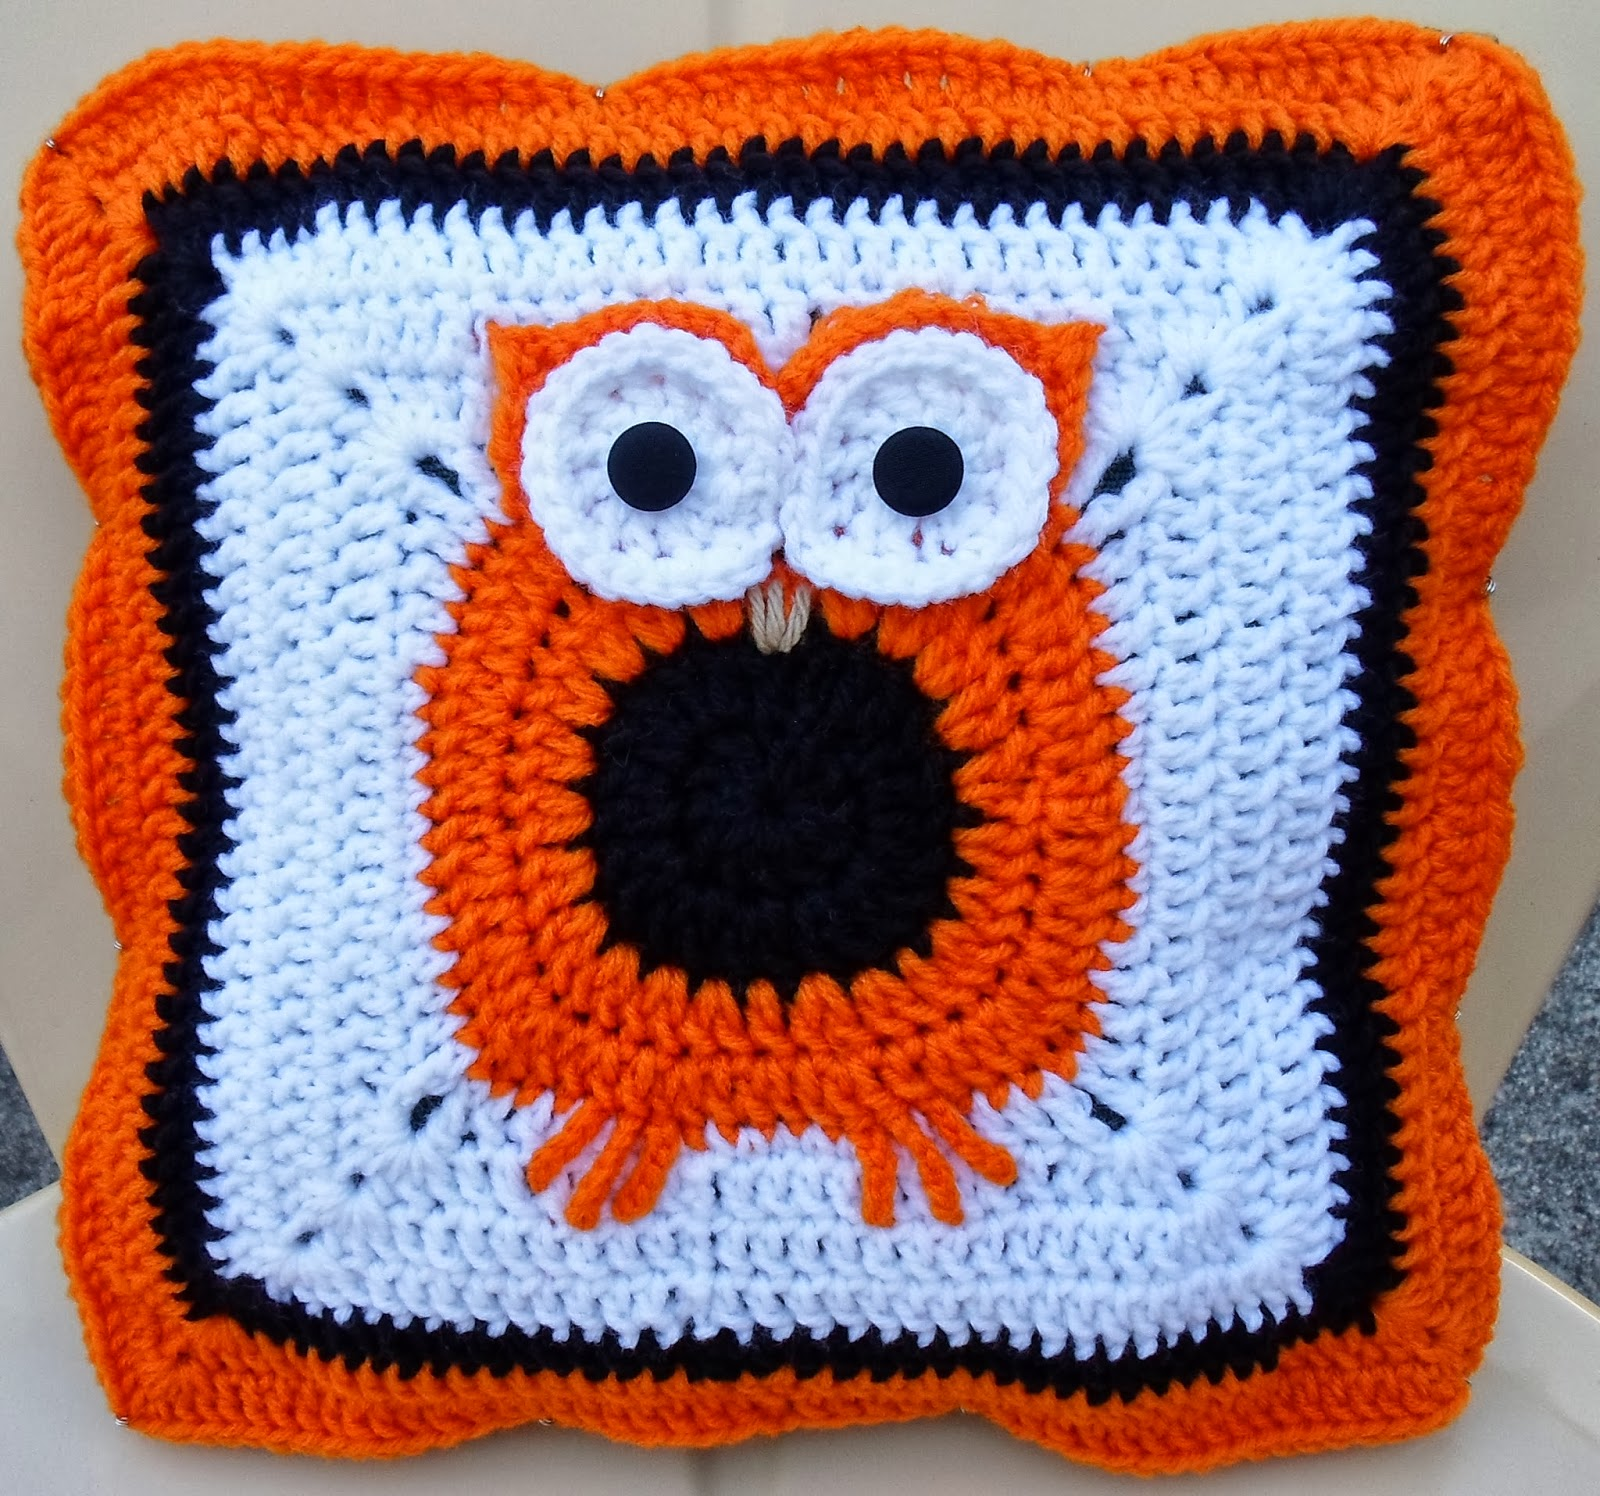 Free Crochet Owl Cushion Pattern : Happier Than A Pig In Mud: Crochet Owl Pillow Cover Pattern